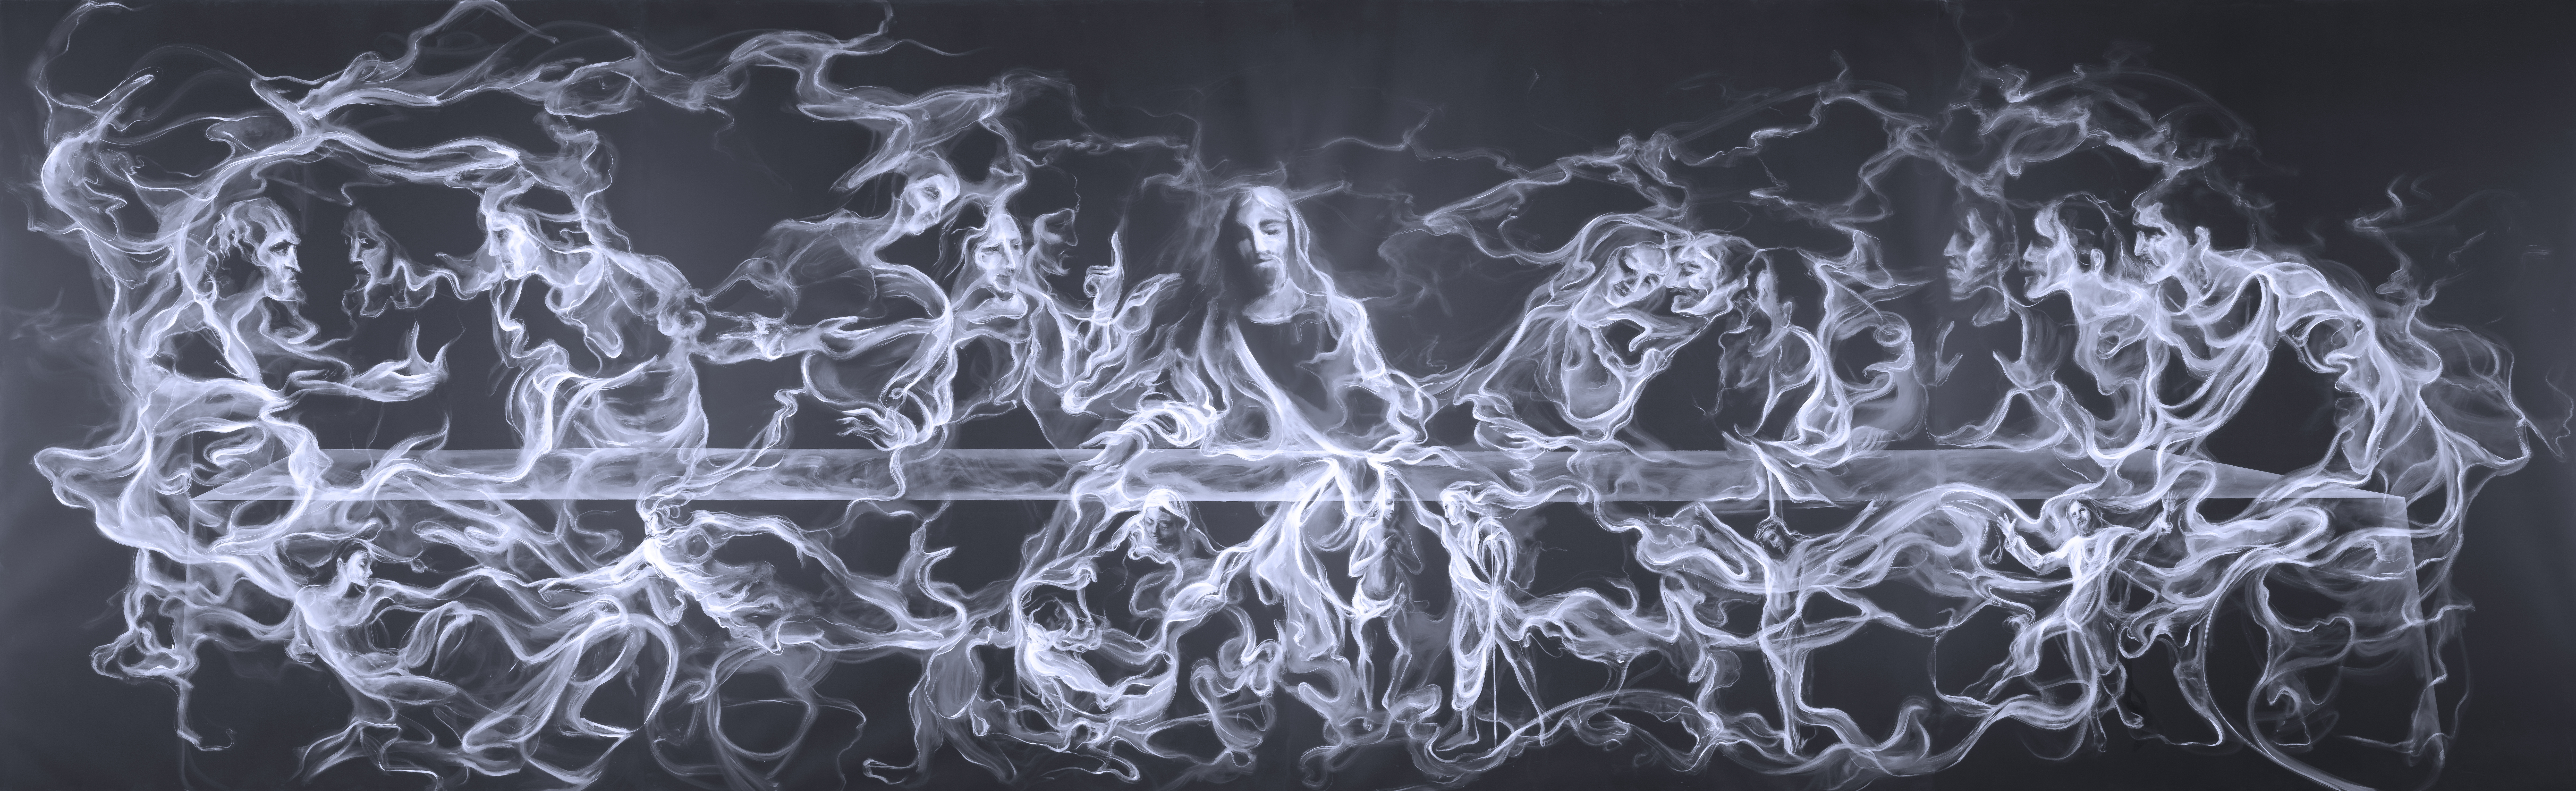 The Last Supper, Smoke artist